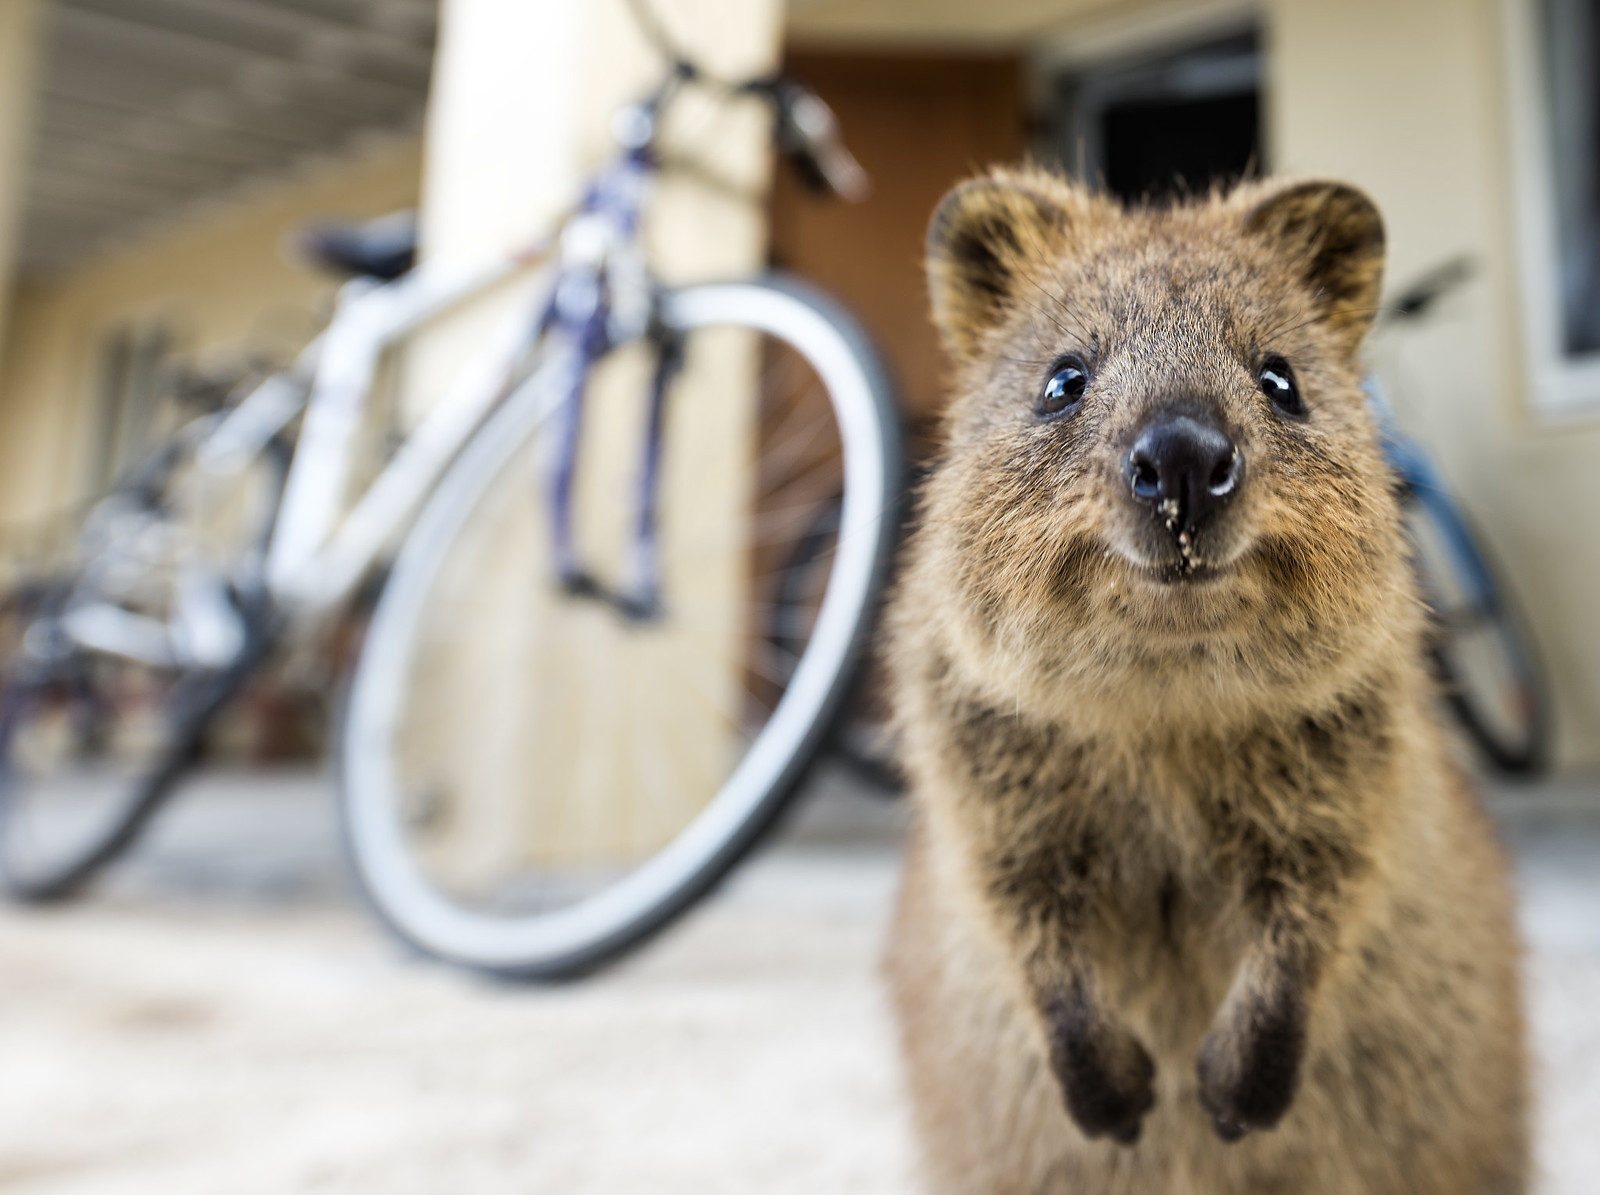 the Quokka is one of happiest animals : aww